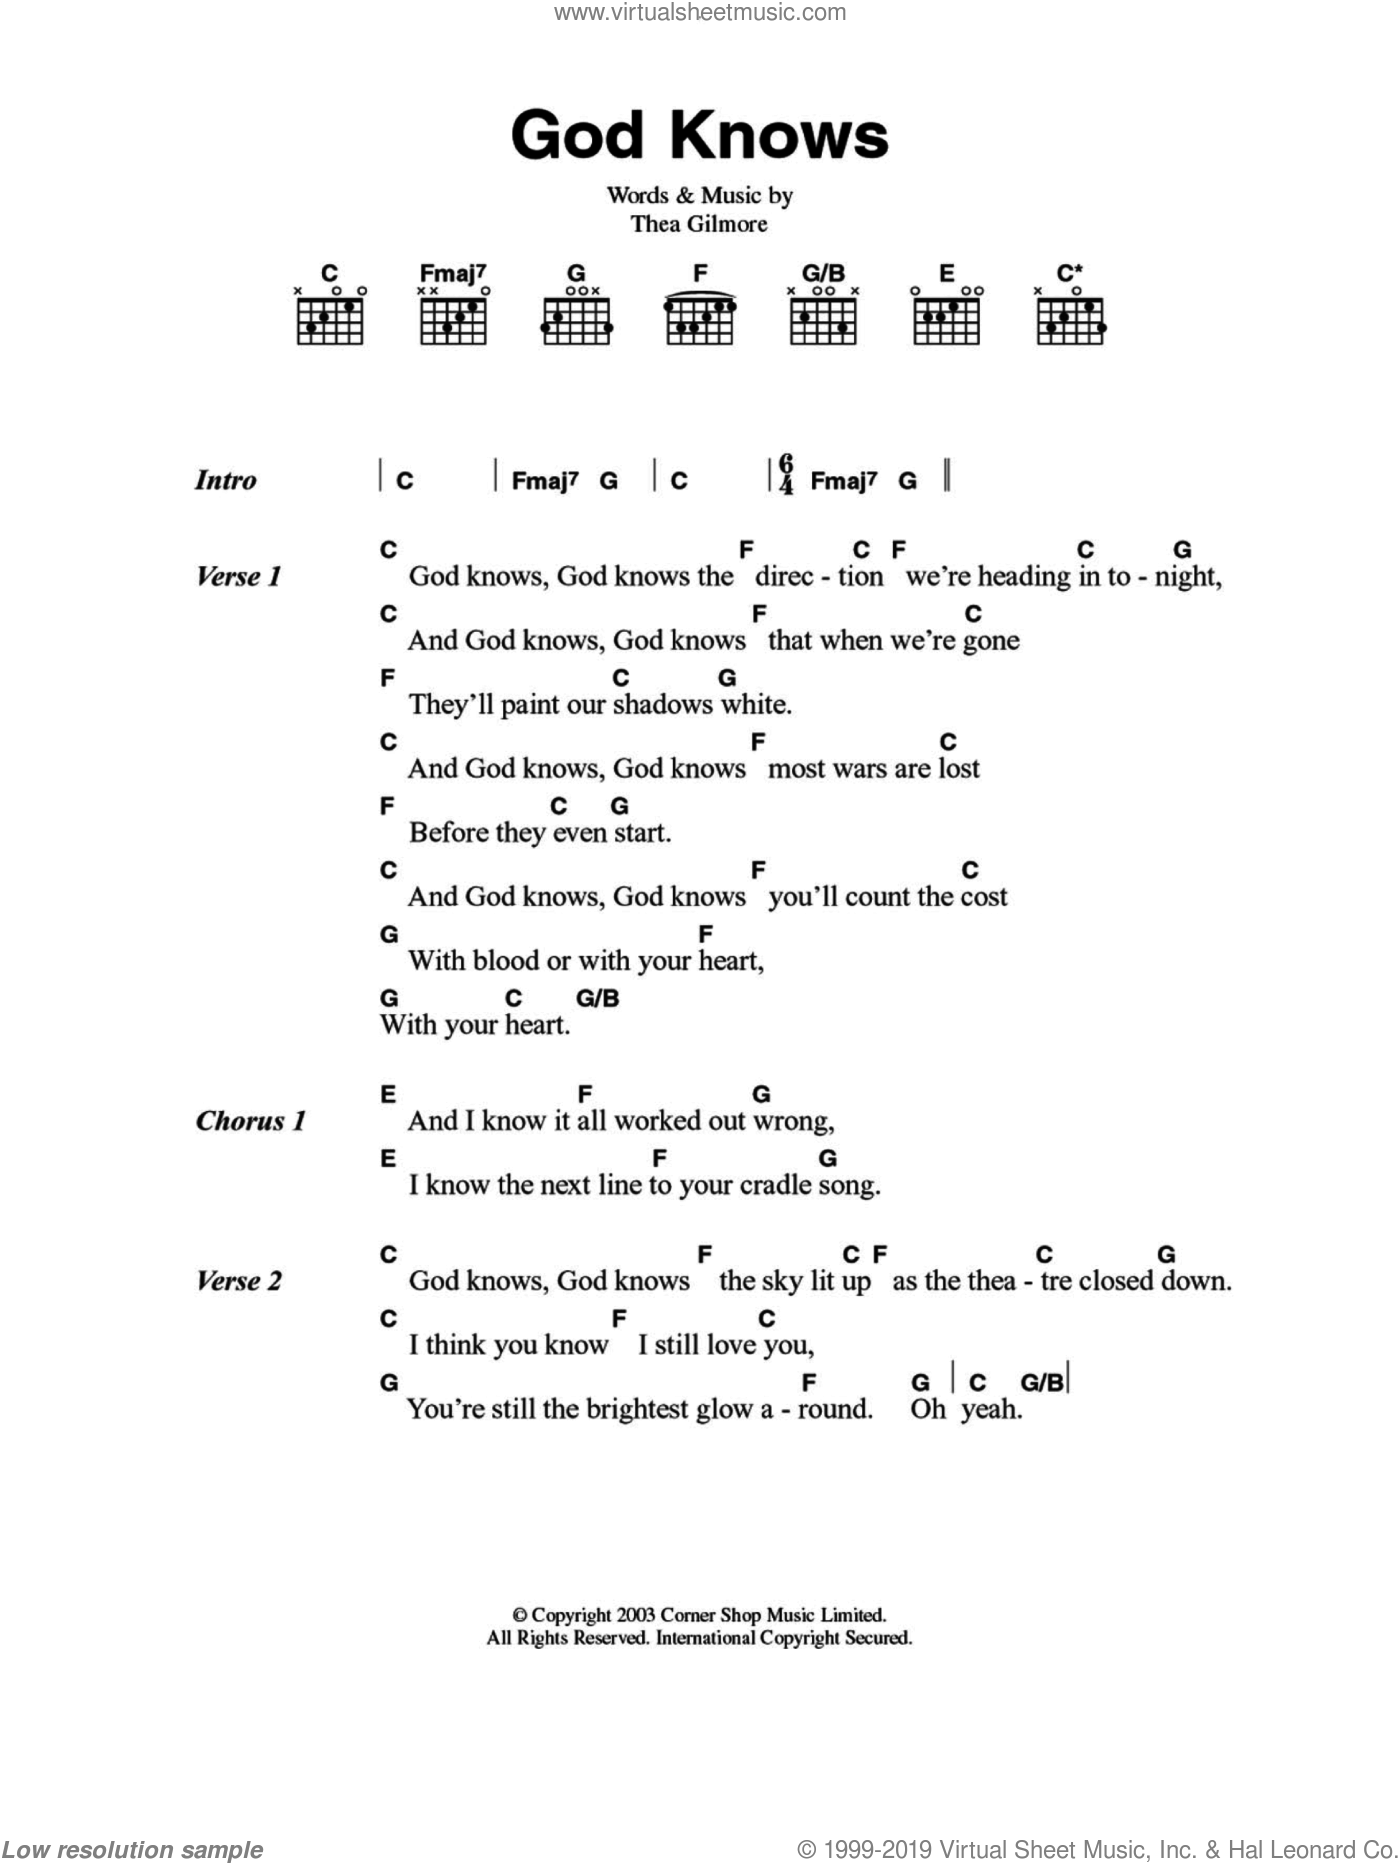 God Knows sheet music for guitar (chords, lyrics, melody) by Thea Gilmore